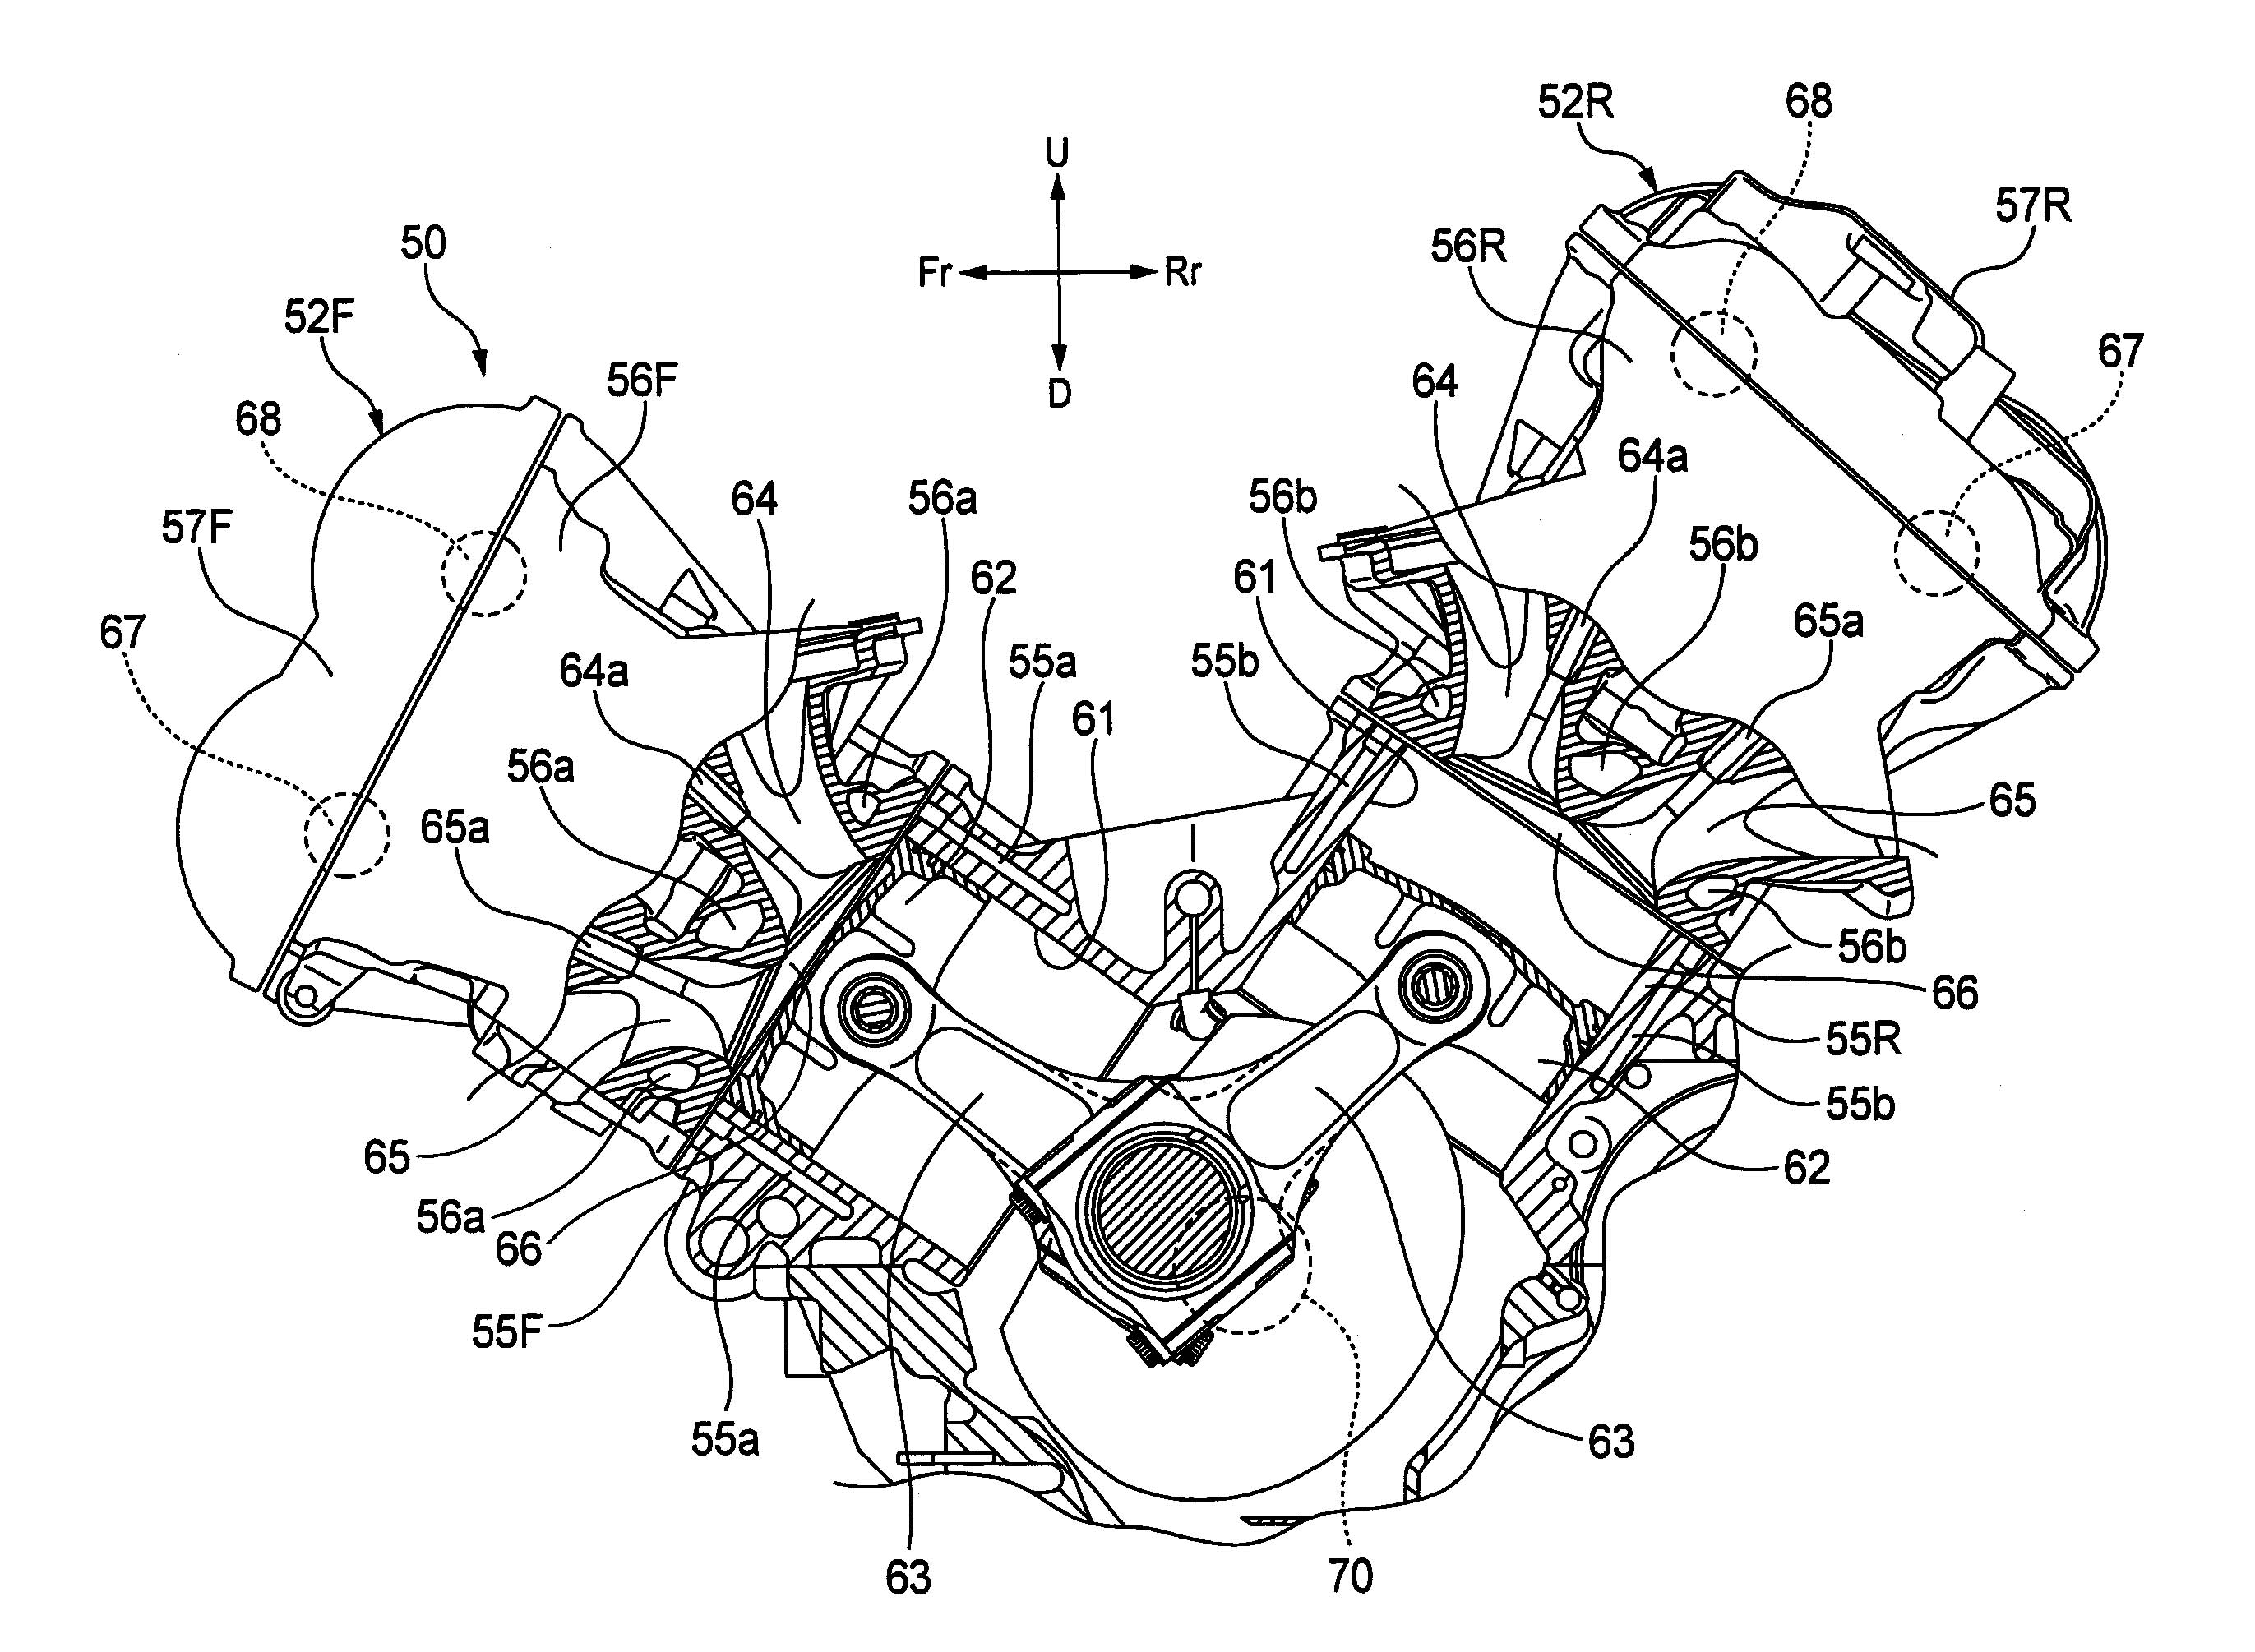 Honda V4 Superbike Engine Outed in Patent Photos - Asphalt ... V4 Engine Diagram